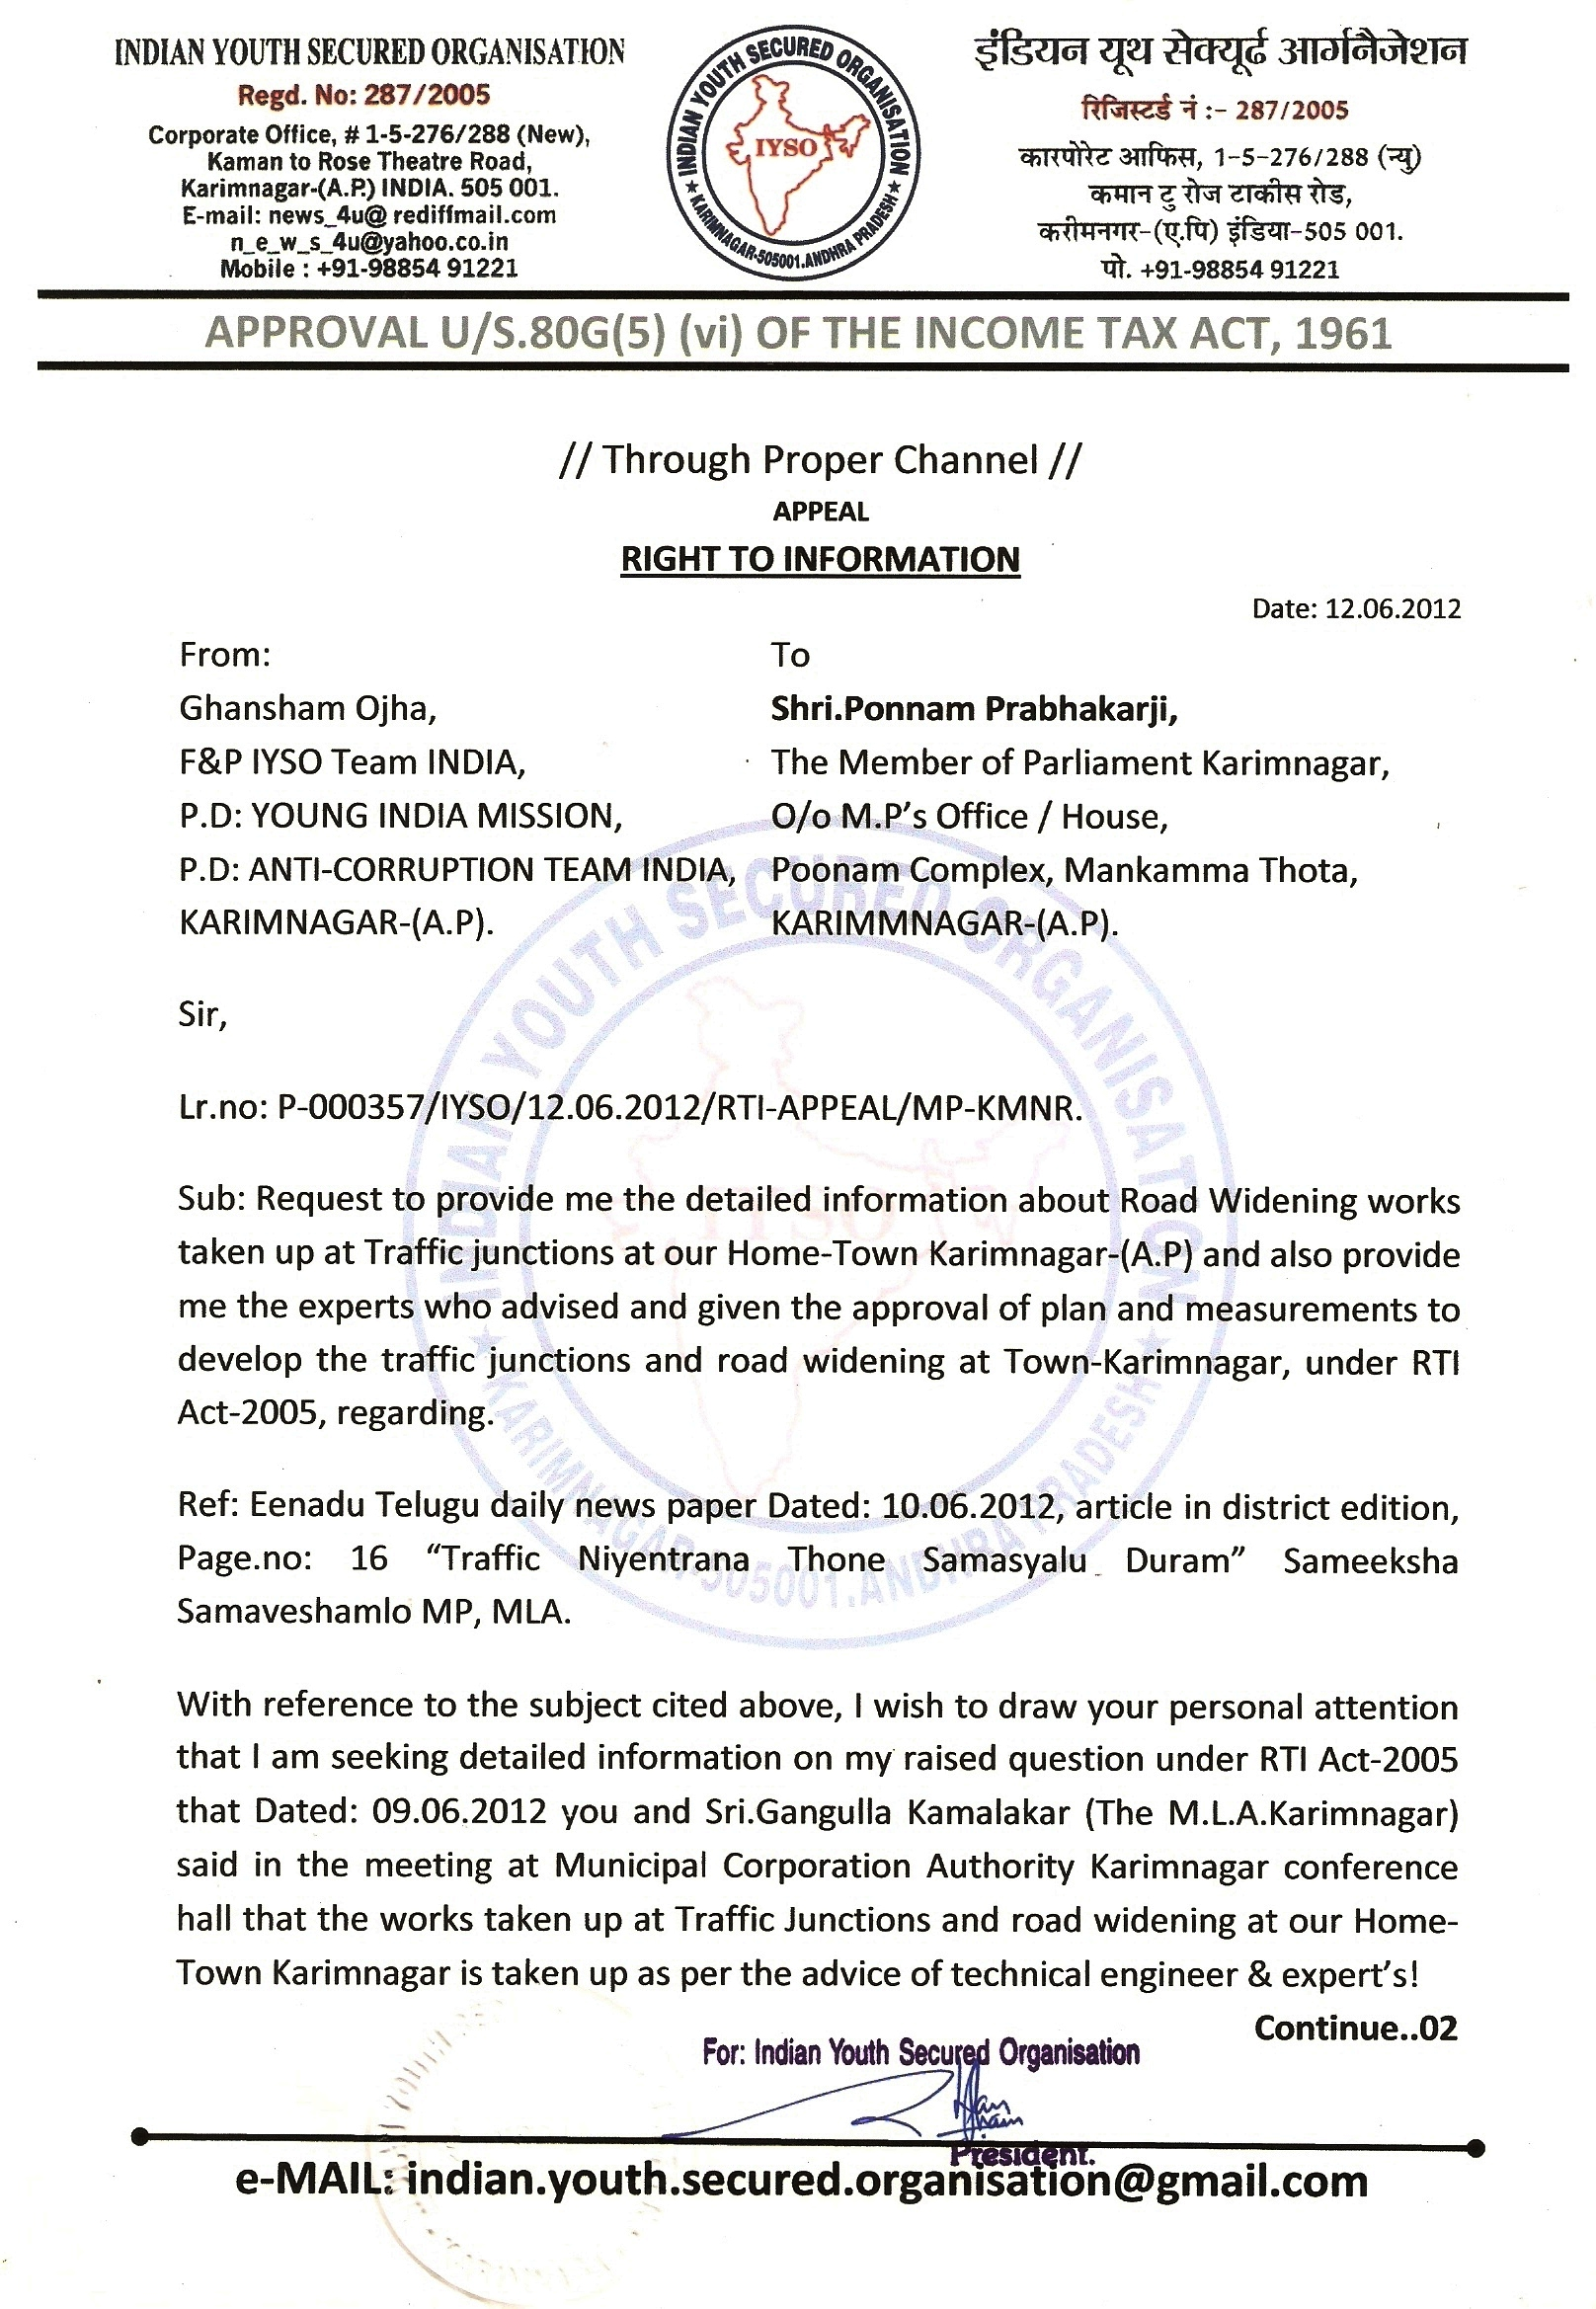 RTI APPEAL TO THE MEMBER OF PARLIAMENT KARIMNGAR Request